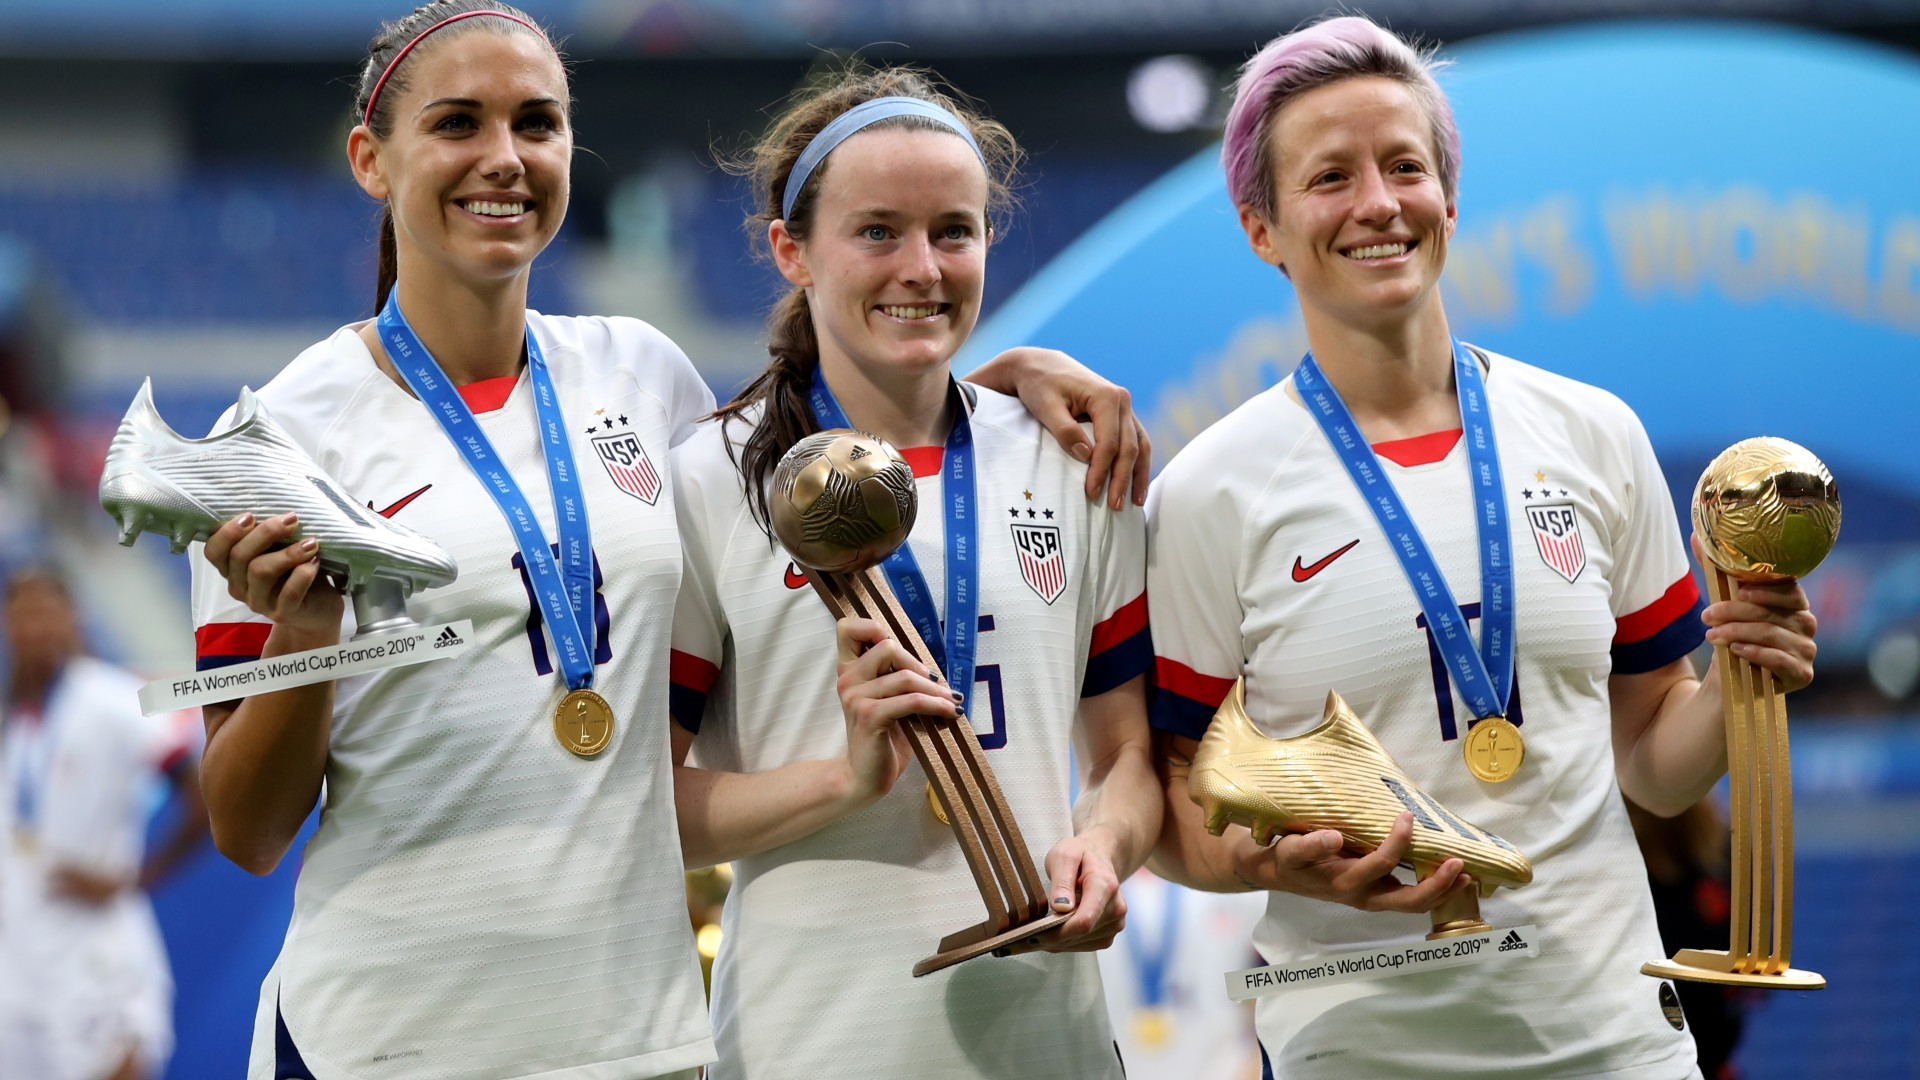 The inequality of FIFA awards is a problem that the USWNT is struggling to get equal pay for, says US football president